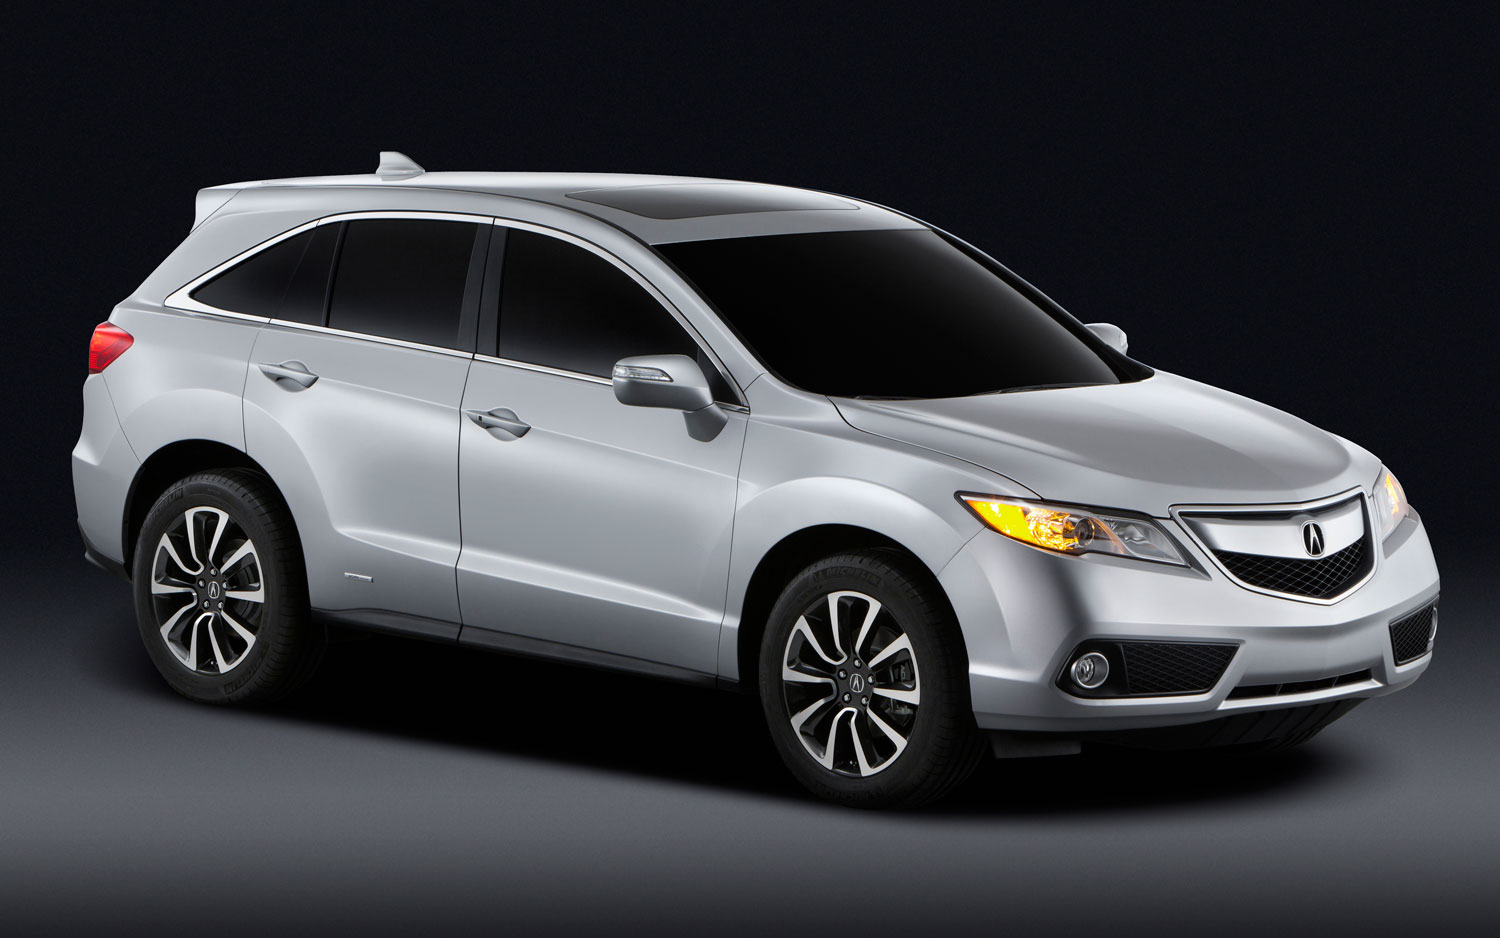 2013 Acura RDX Front Three Quarters View1